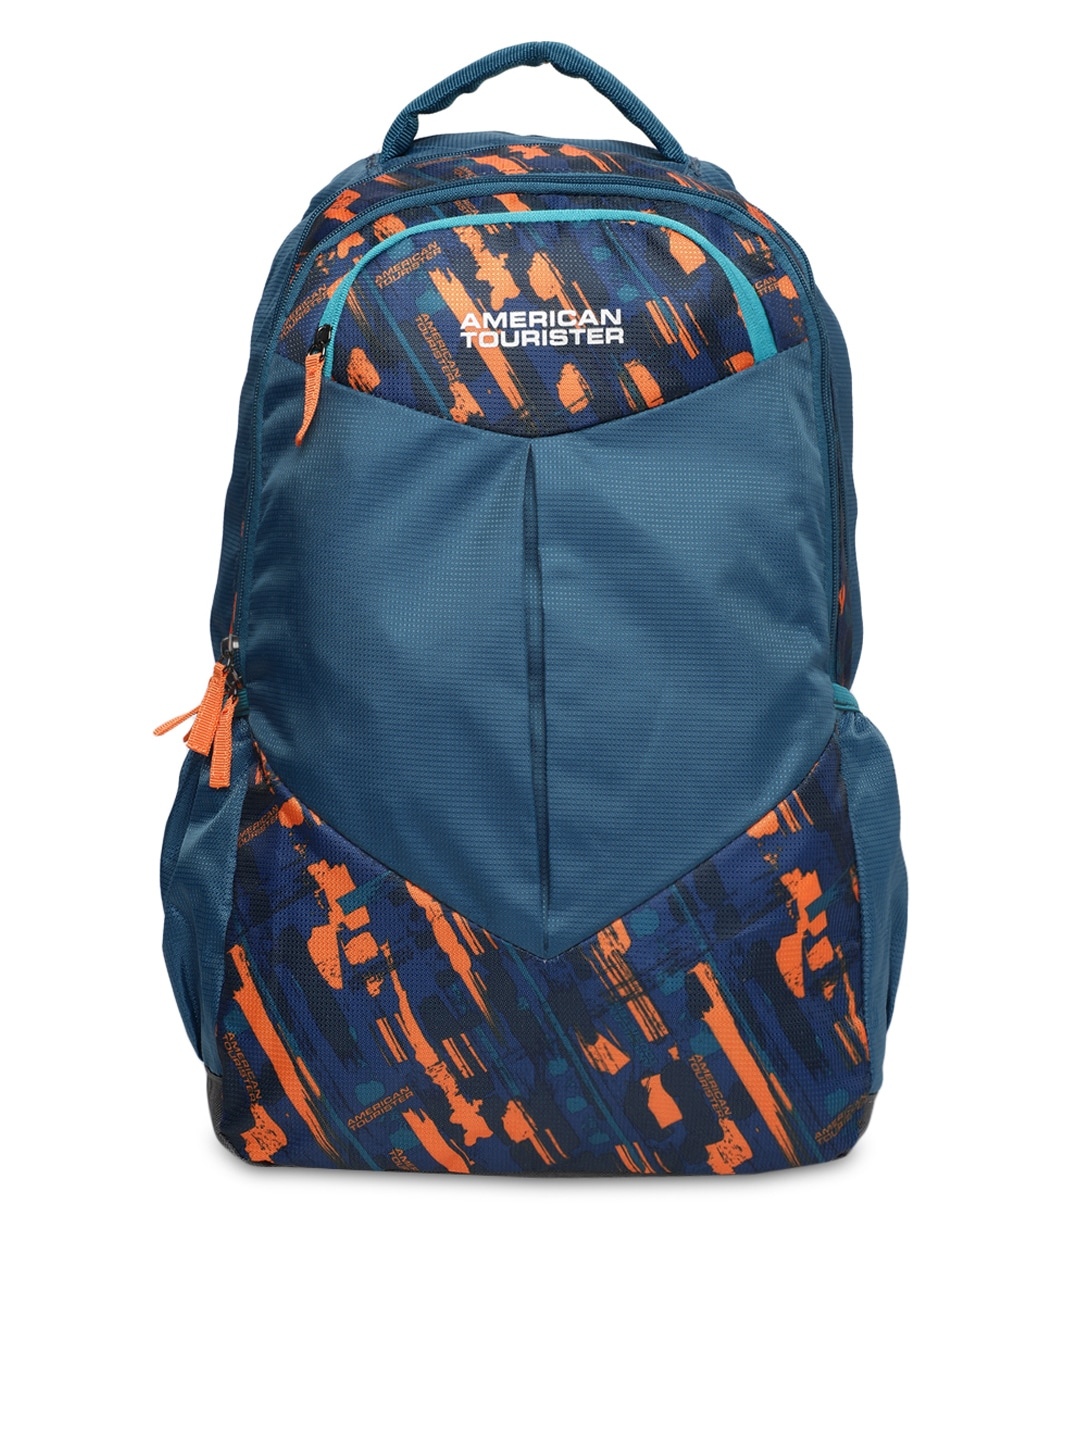 c4b2817443 American Tourister - Buy American Tourister Products Online